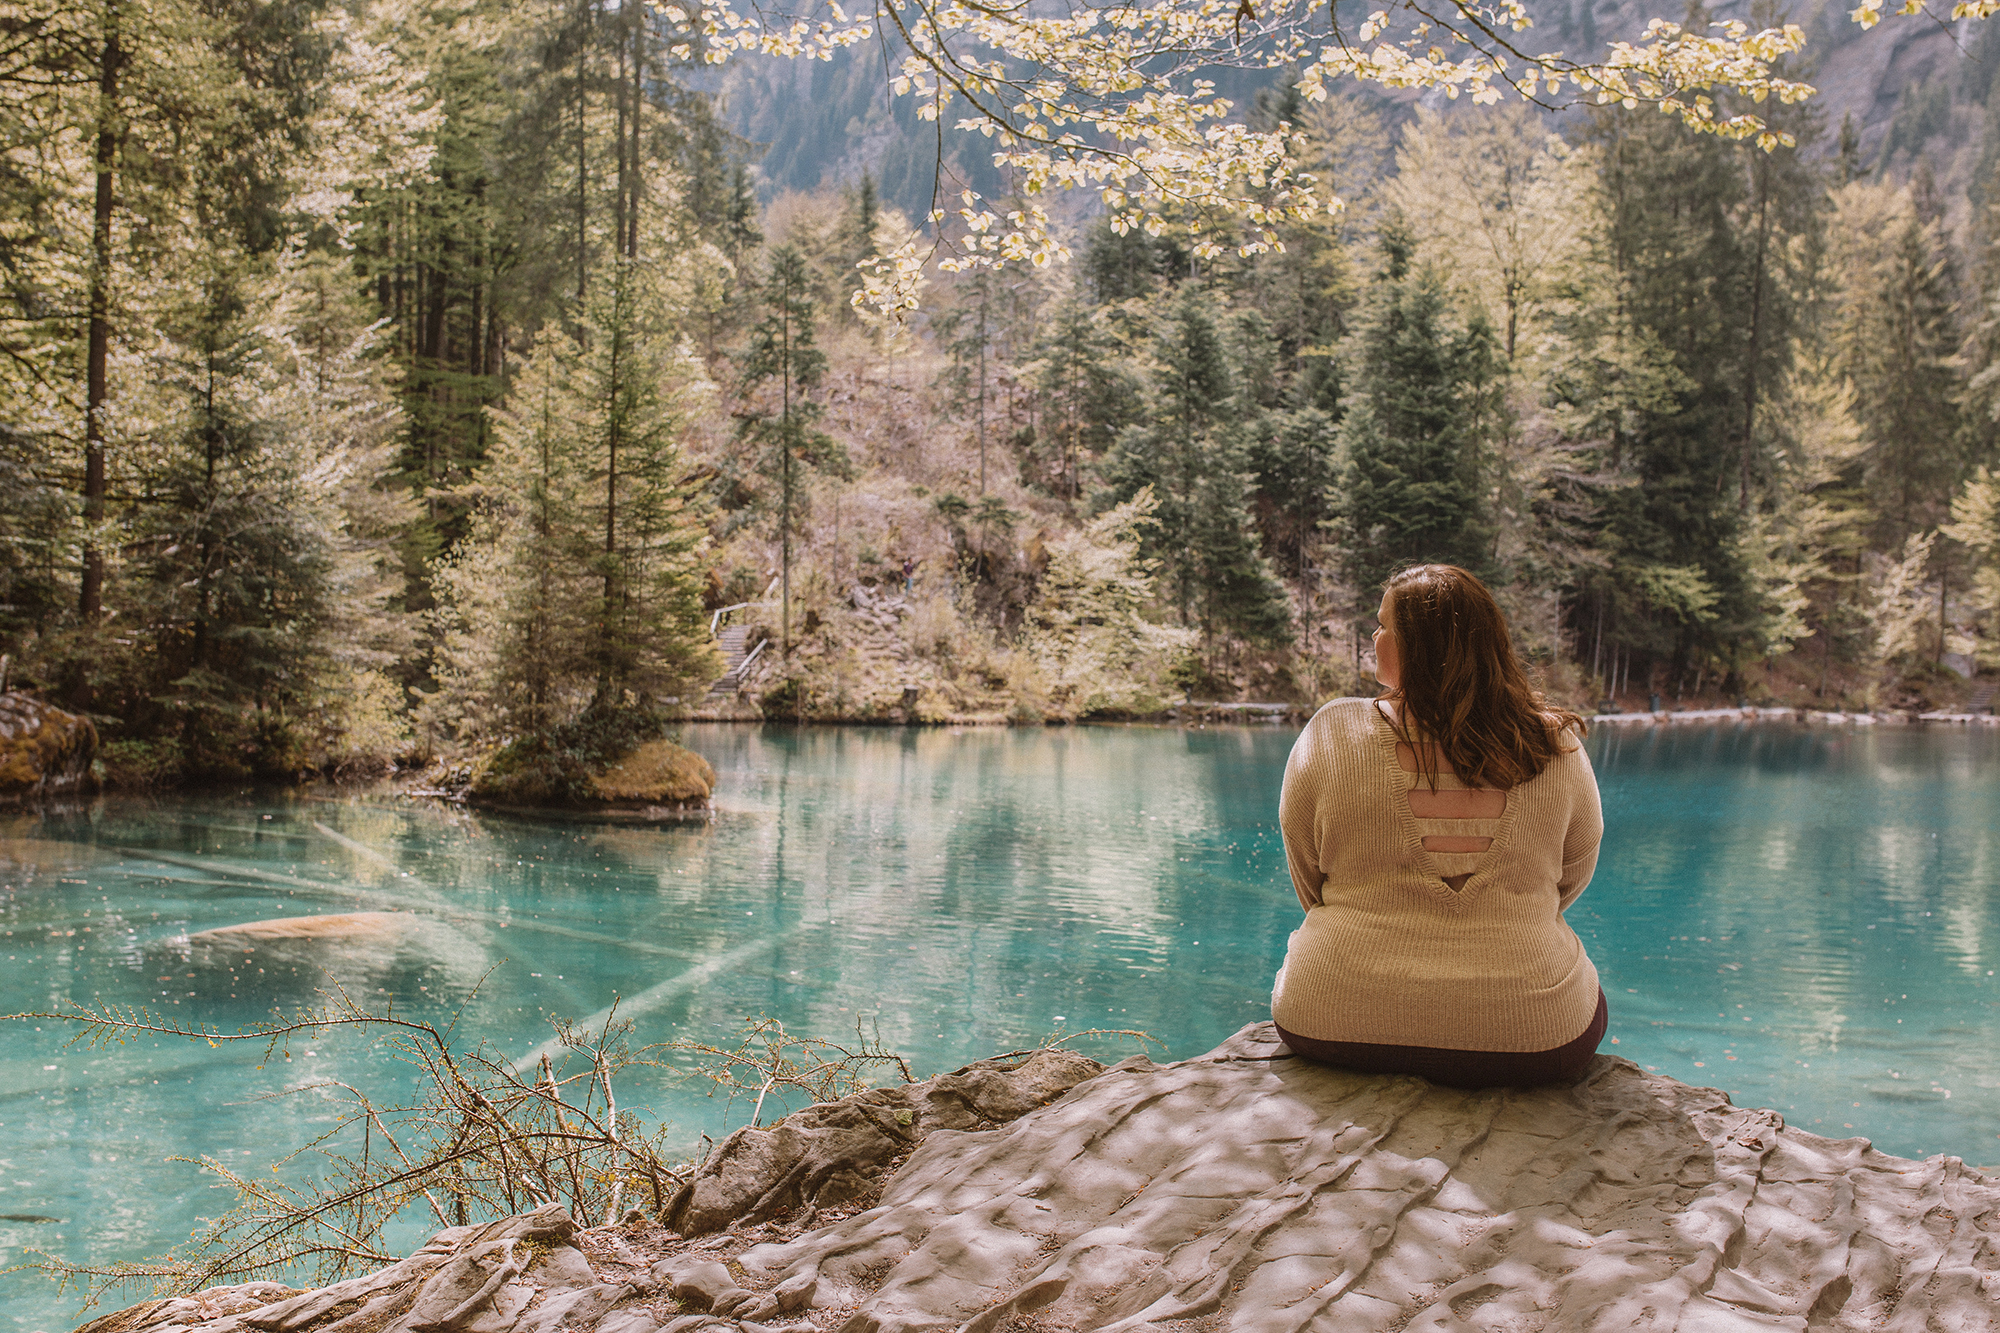 Fat Girl Traveling Solo | This Plus Size Girl took the reigns and went on a life changing solo journey